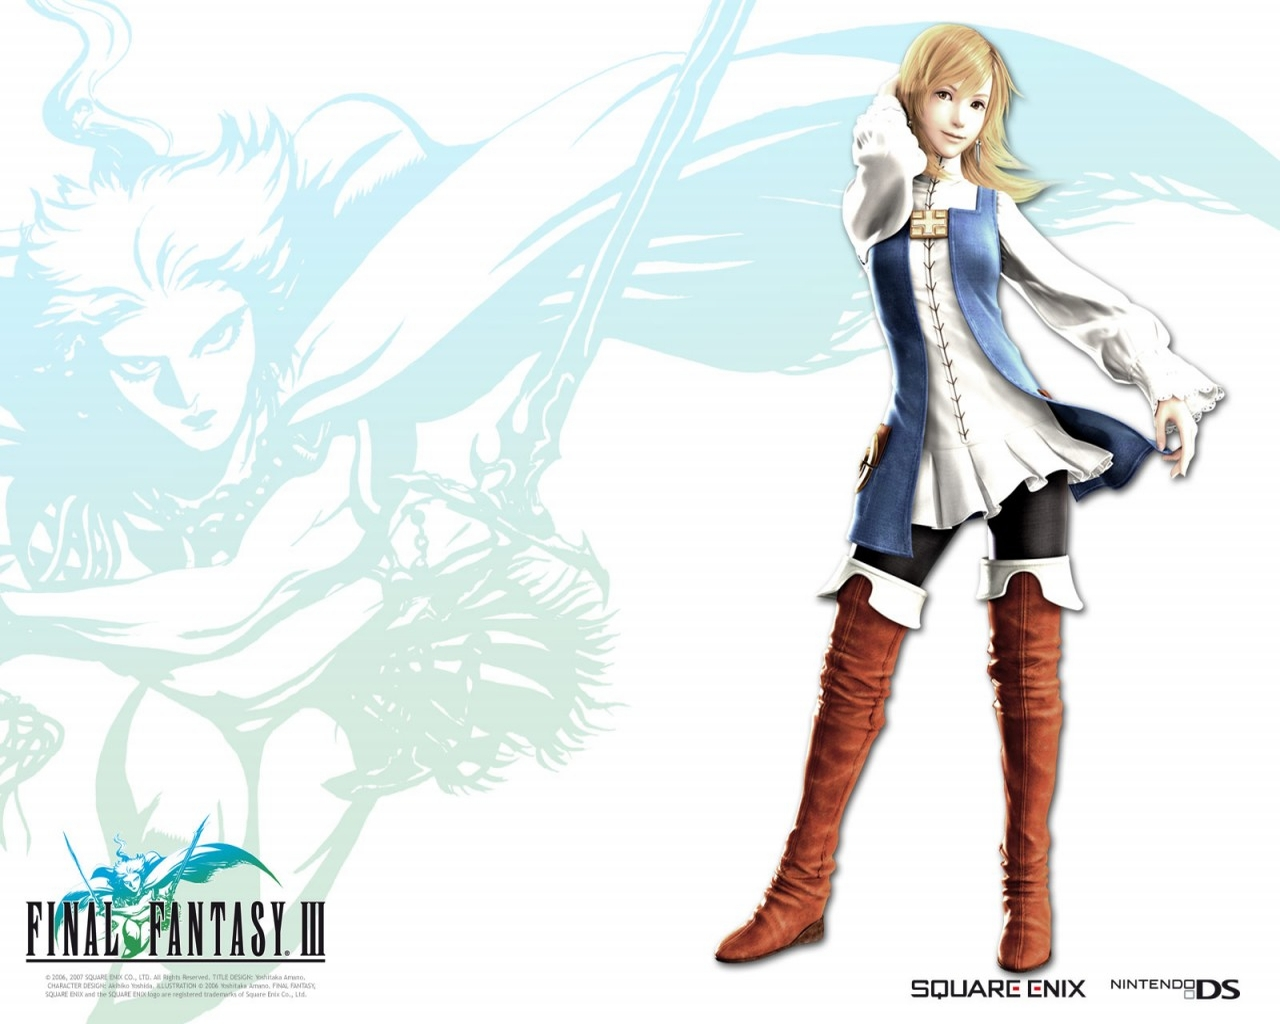 Home Wallpaper Final Fantasy 3 Final Fantasy 3 1280x1024